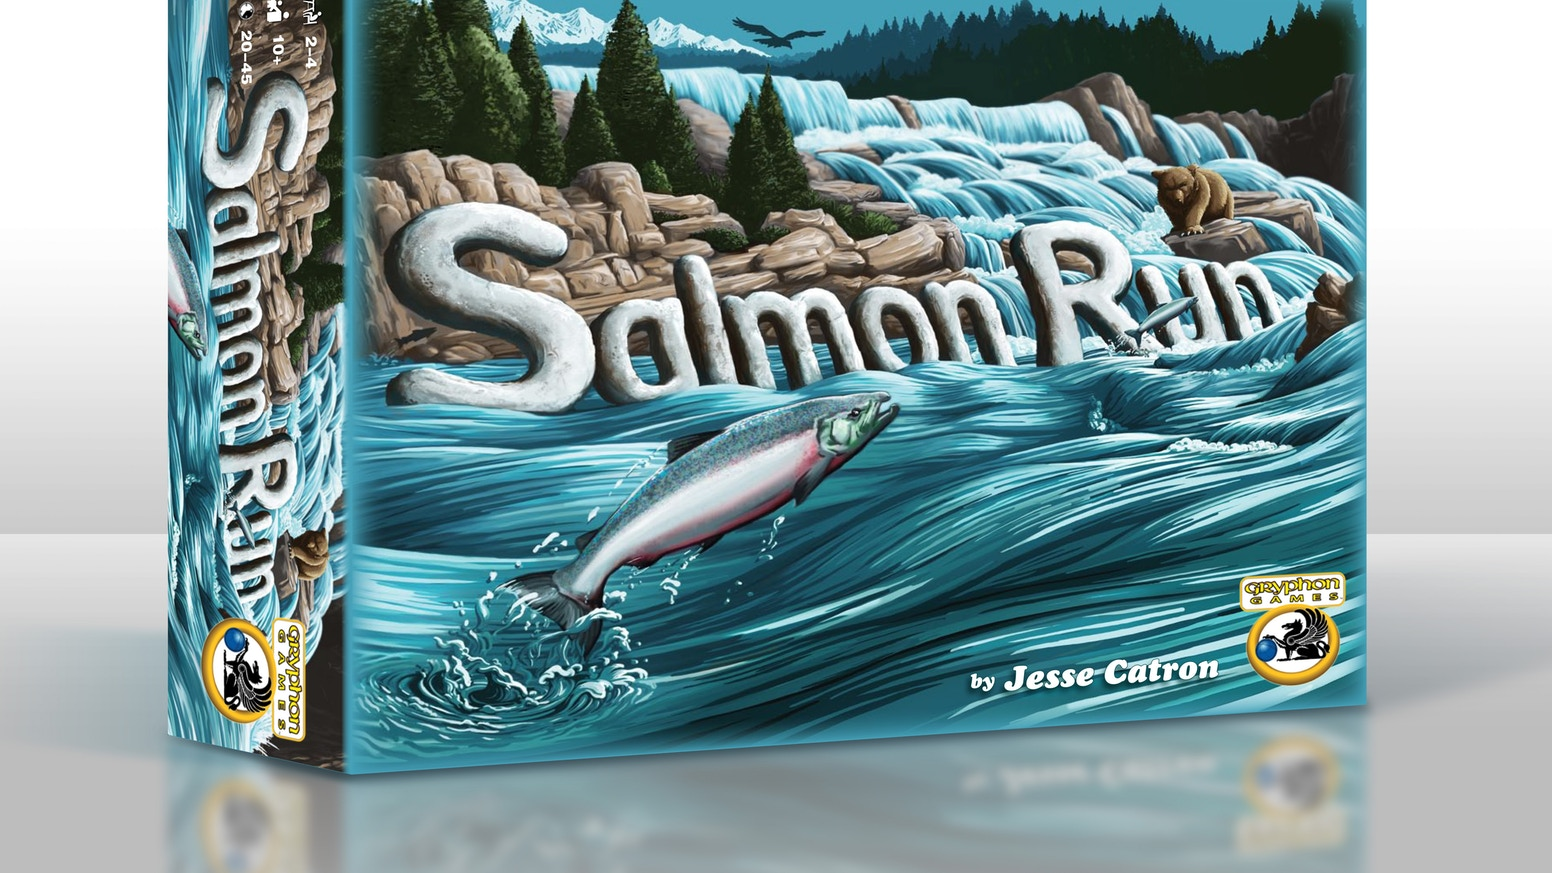 """Salmon Run - """"Enjoy a fast-paced racing game for everyone! Rapids, waterfalls, bears, & eagles all await the salmon on their quest upriver to spawn"""""""